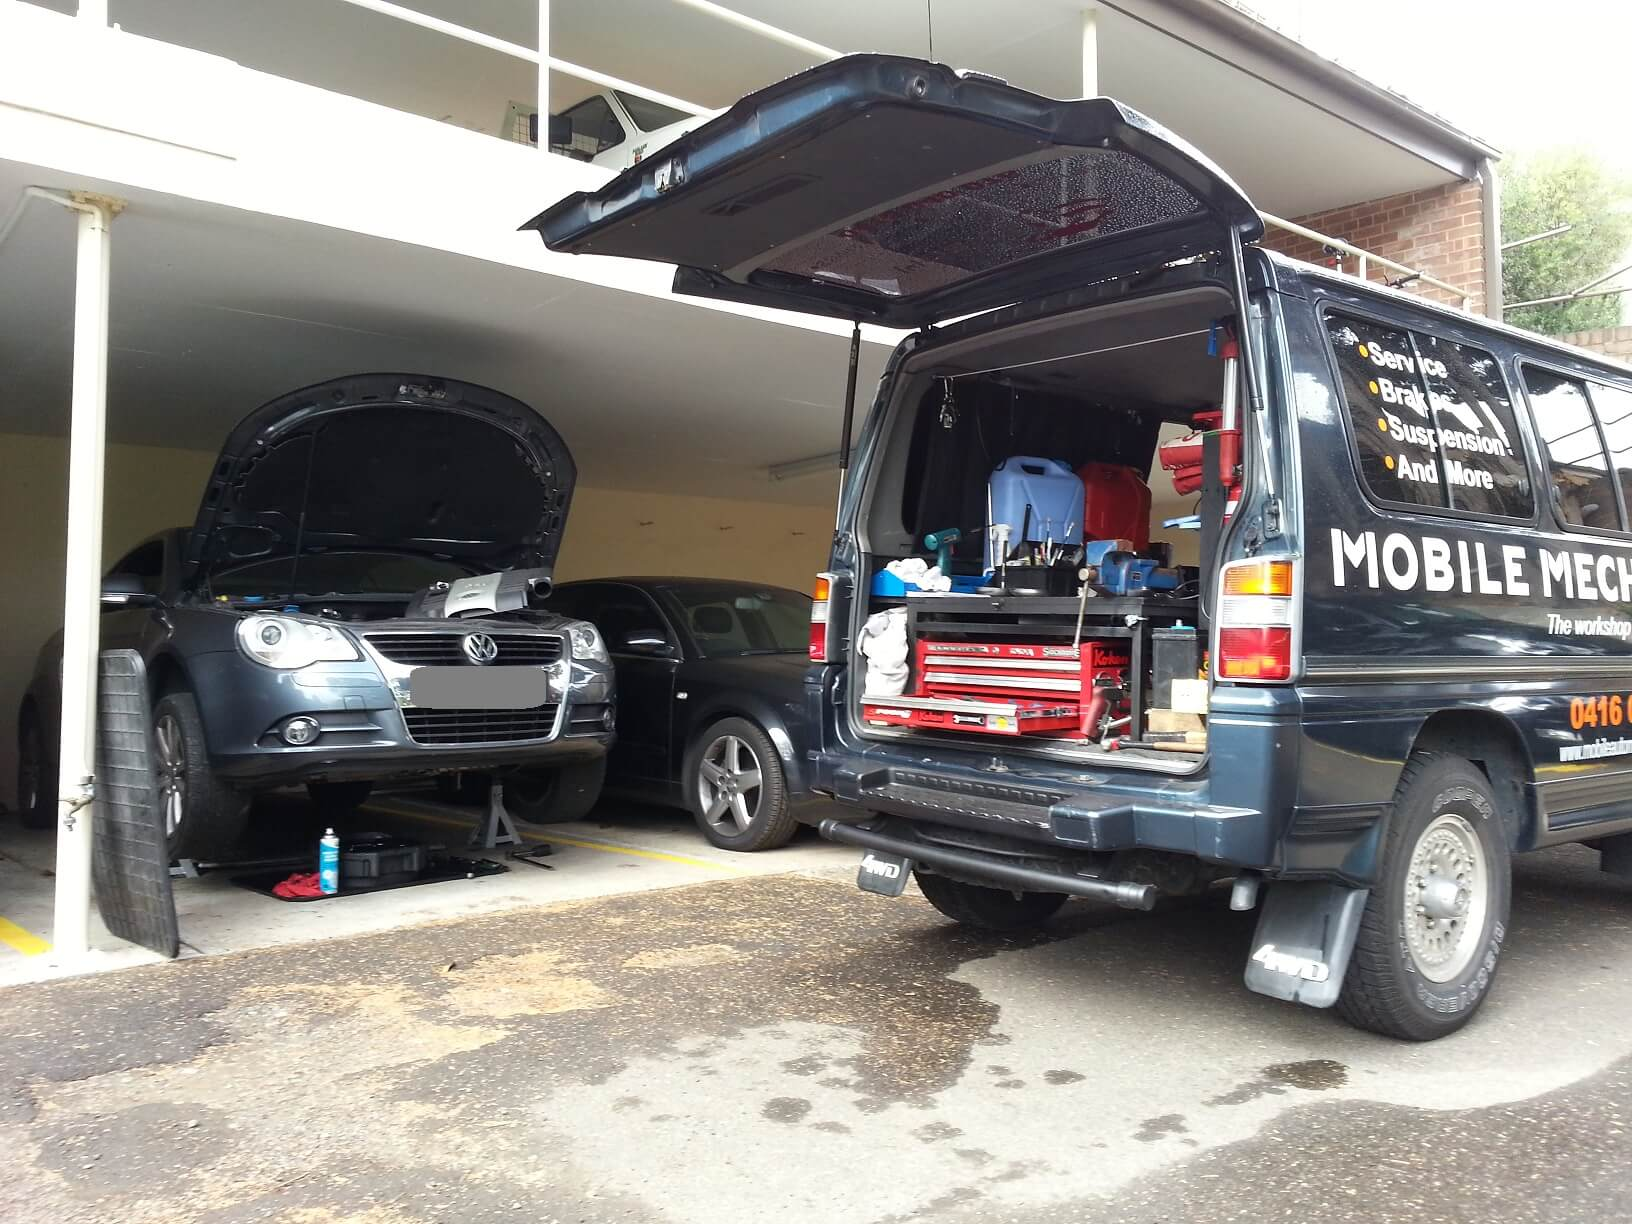 Mobile Auto Repair, emergency roadside car care on location car and truck repairs